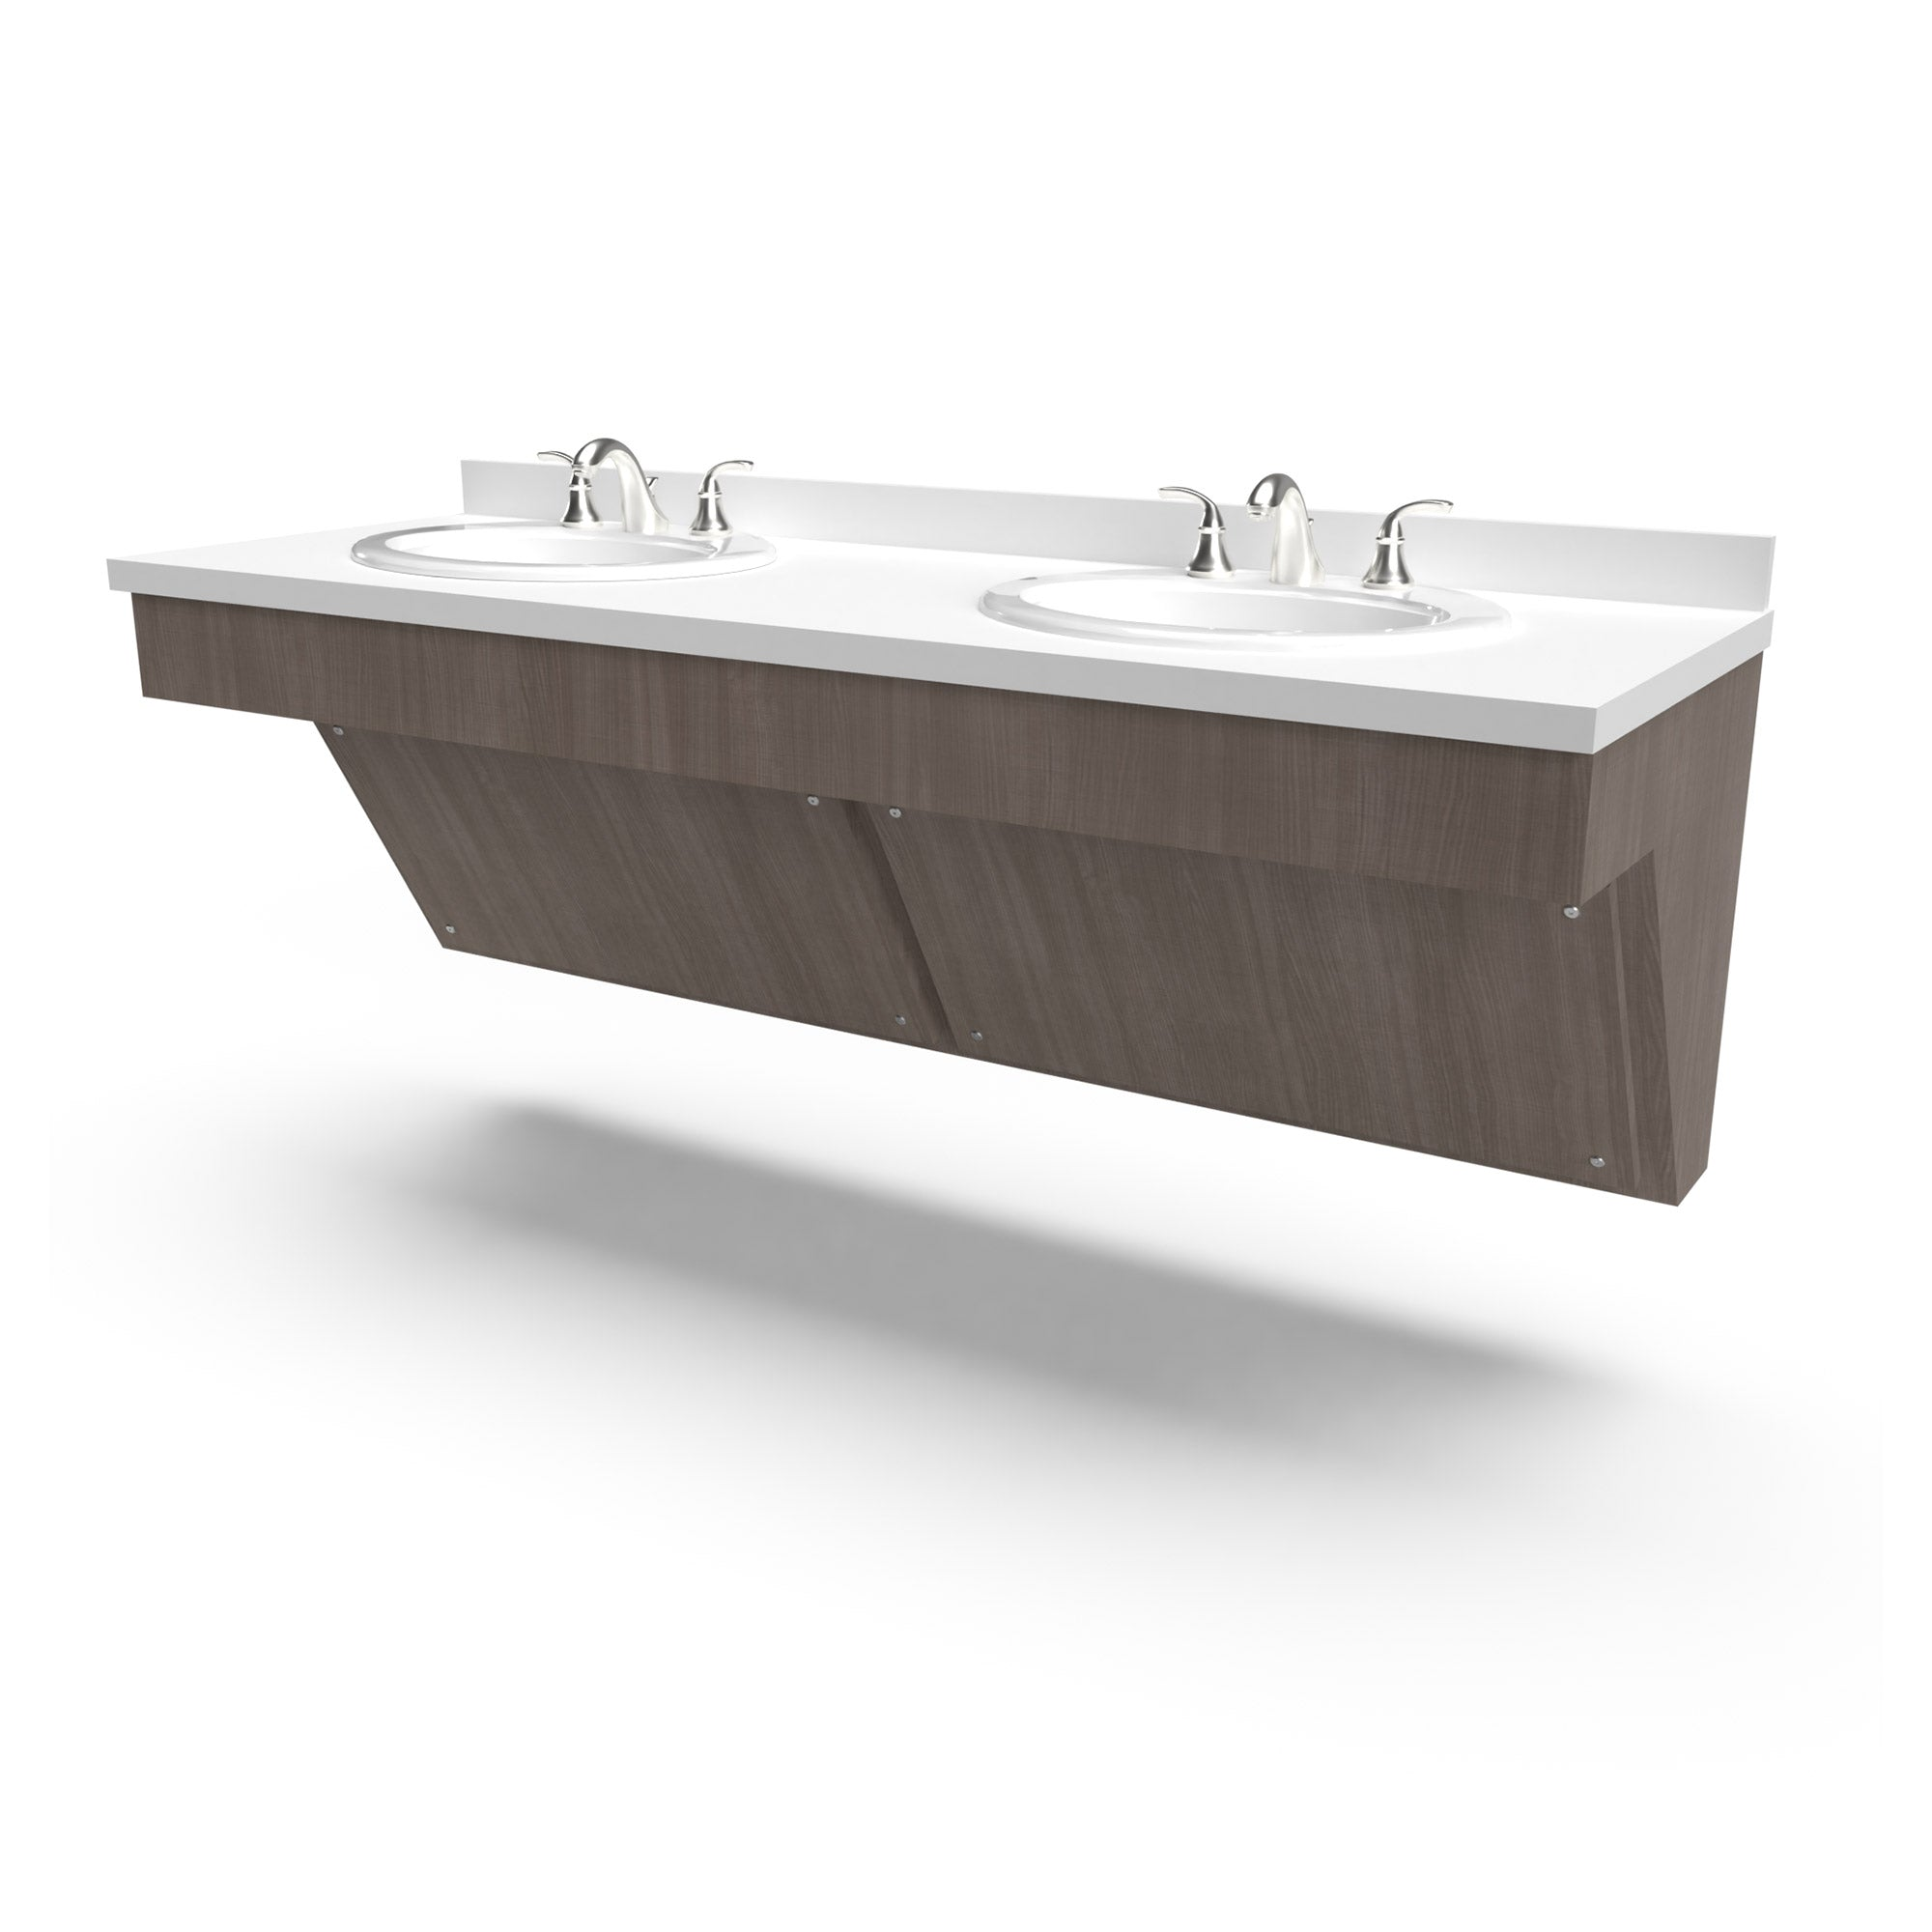 ADA Bathroom Vanity - Collins